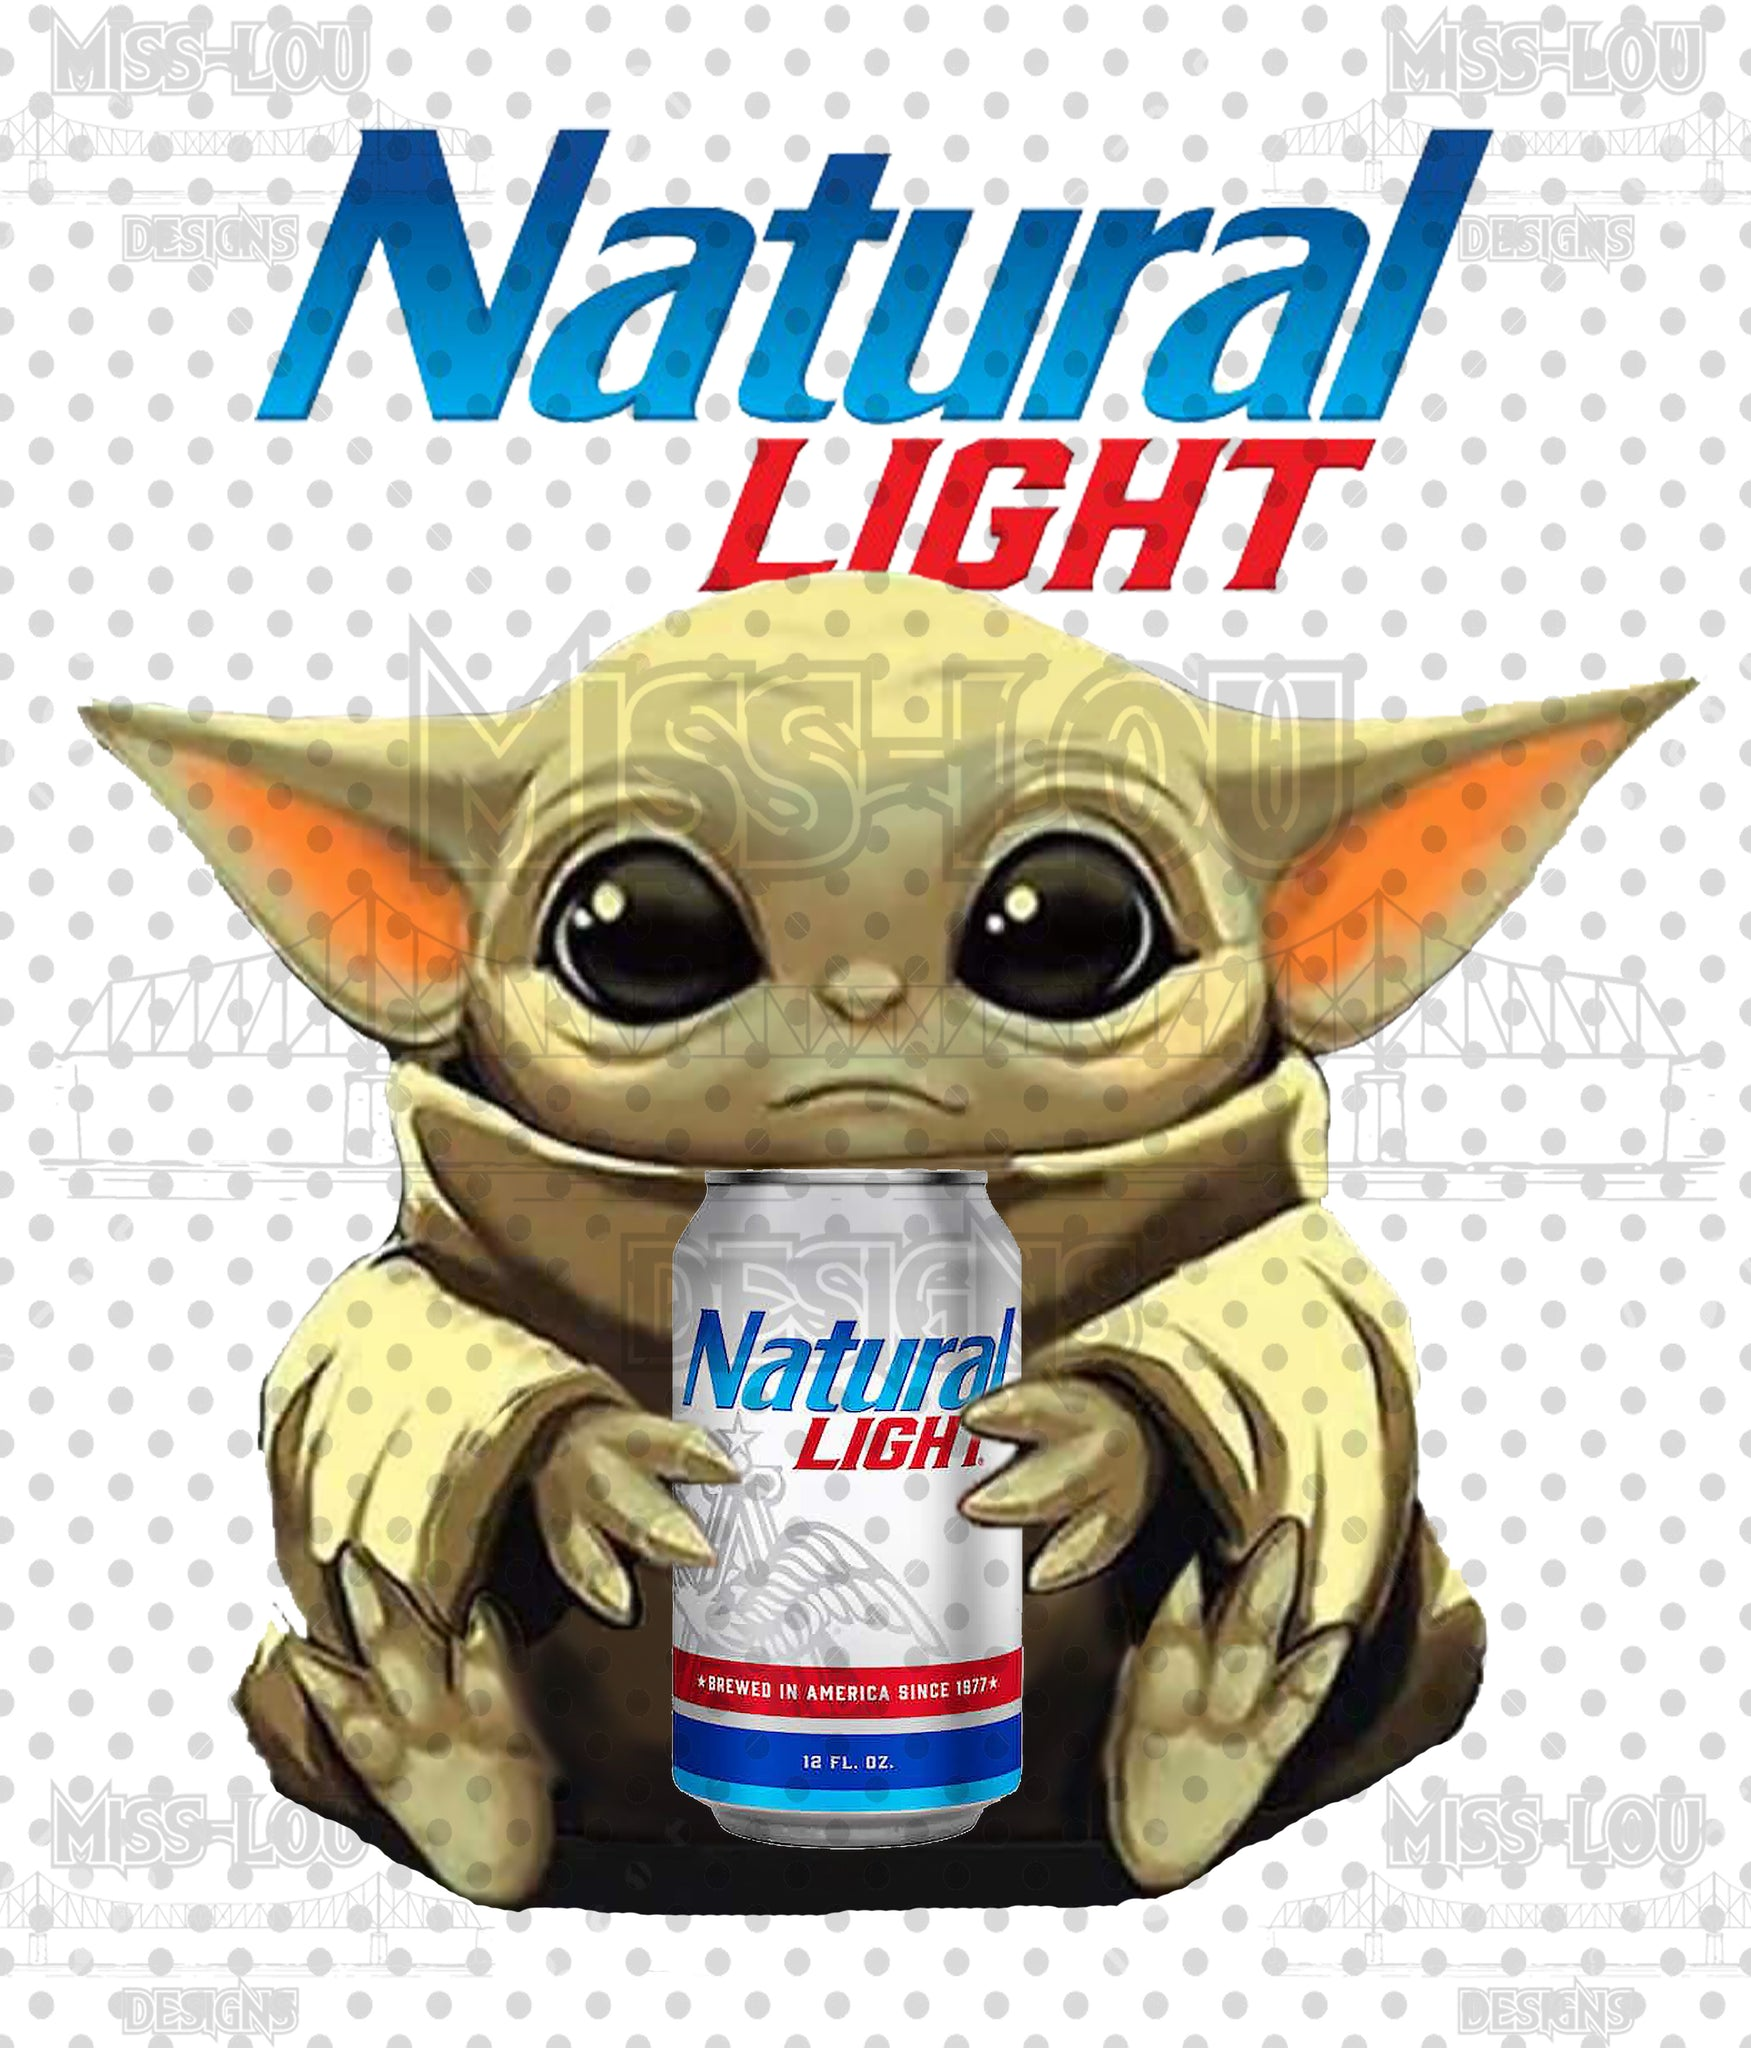 Natural Light Baby Yoda Waterslide